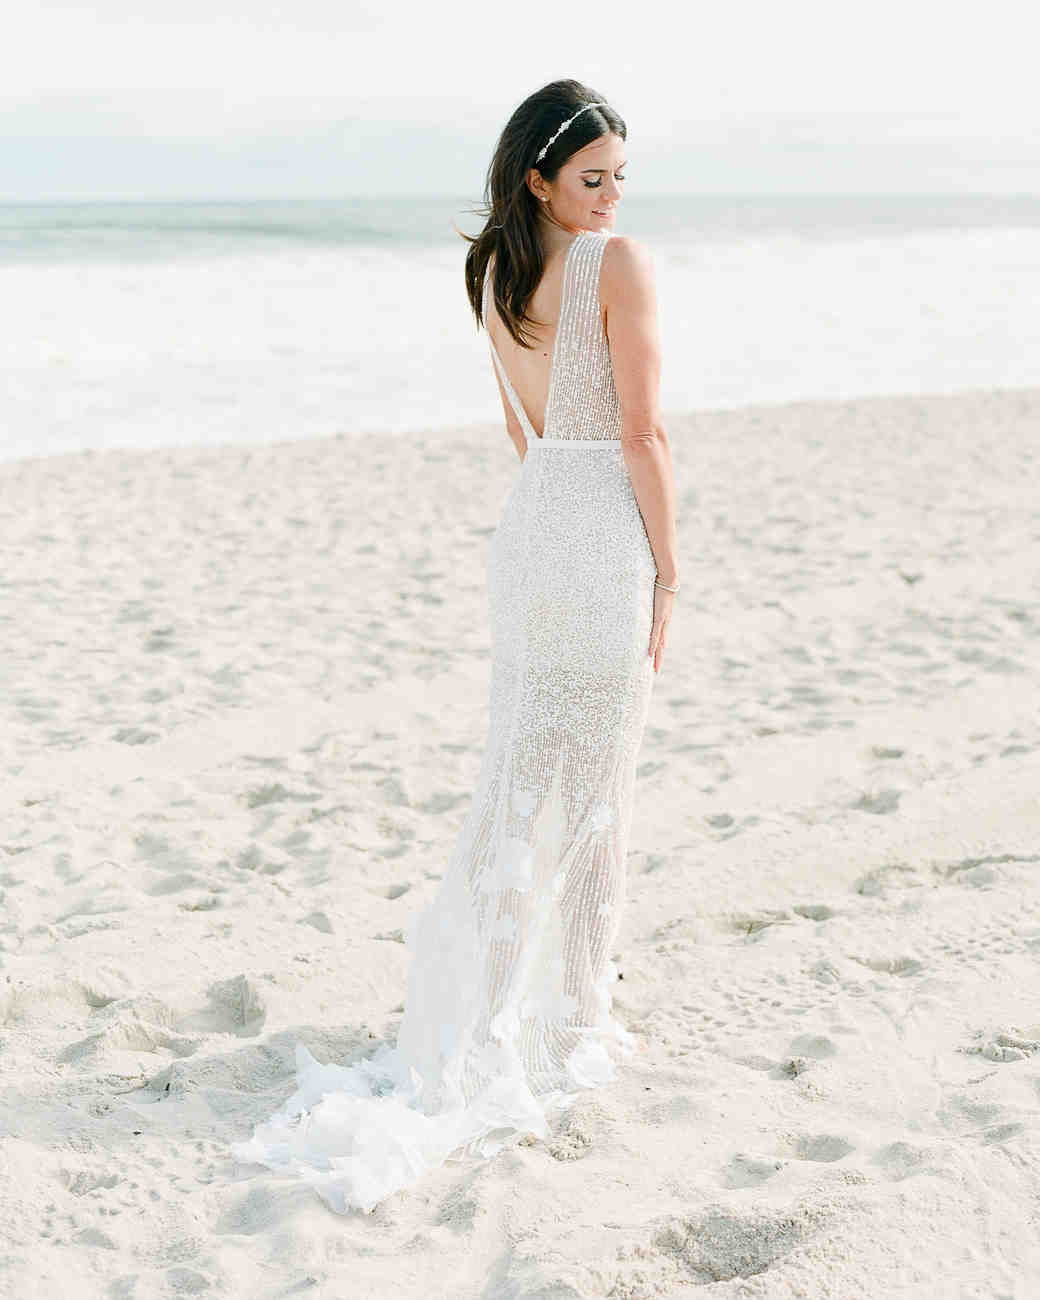 e2dfbeb4c5 27 Stunning Beach Wedding Dresses